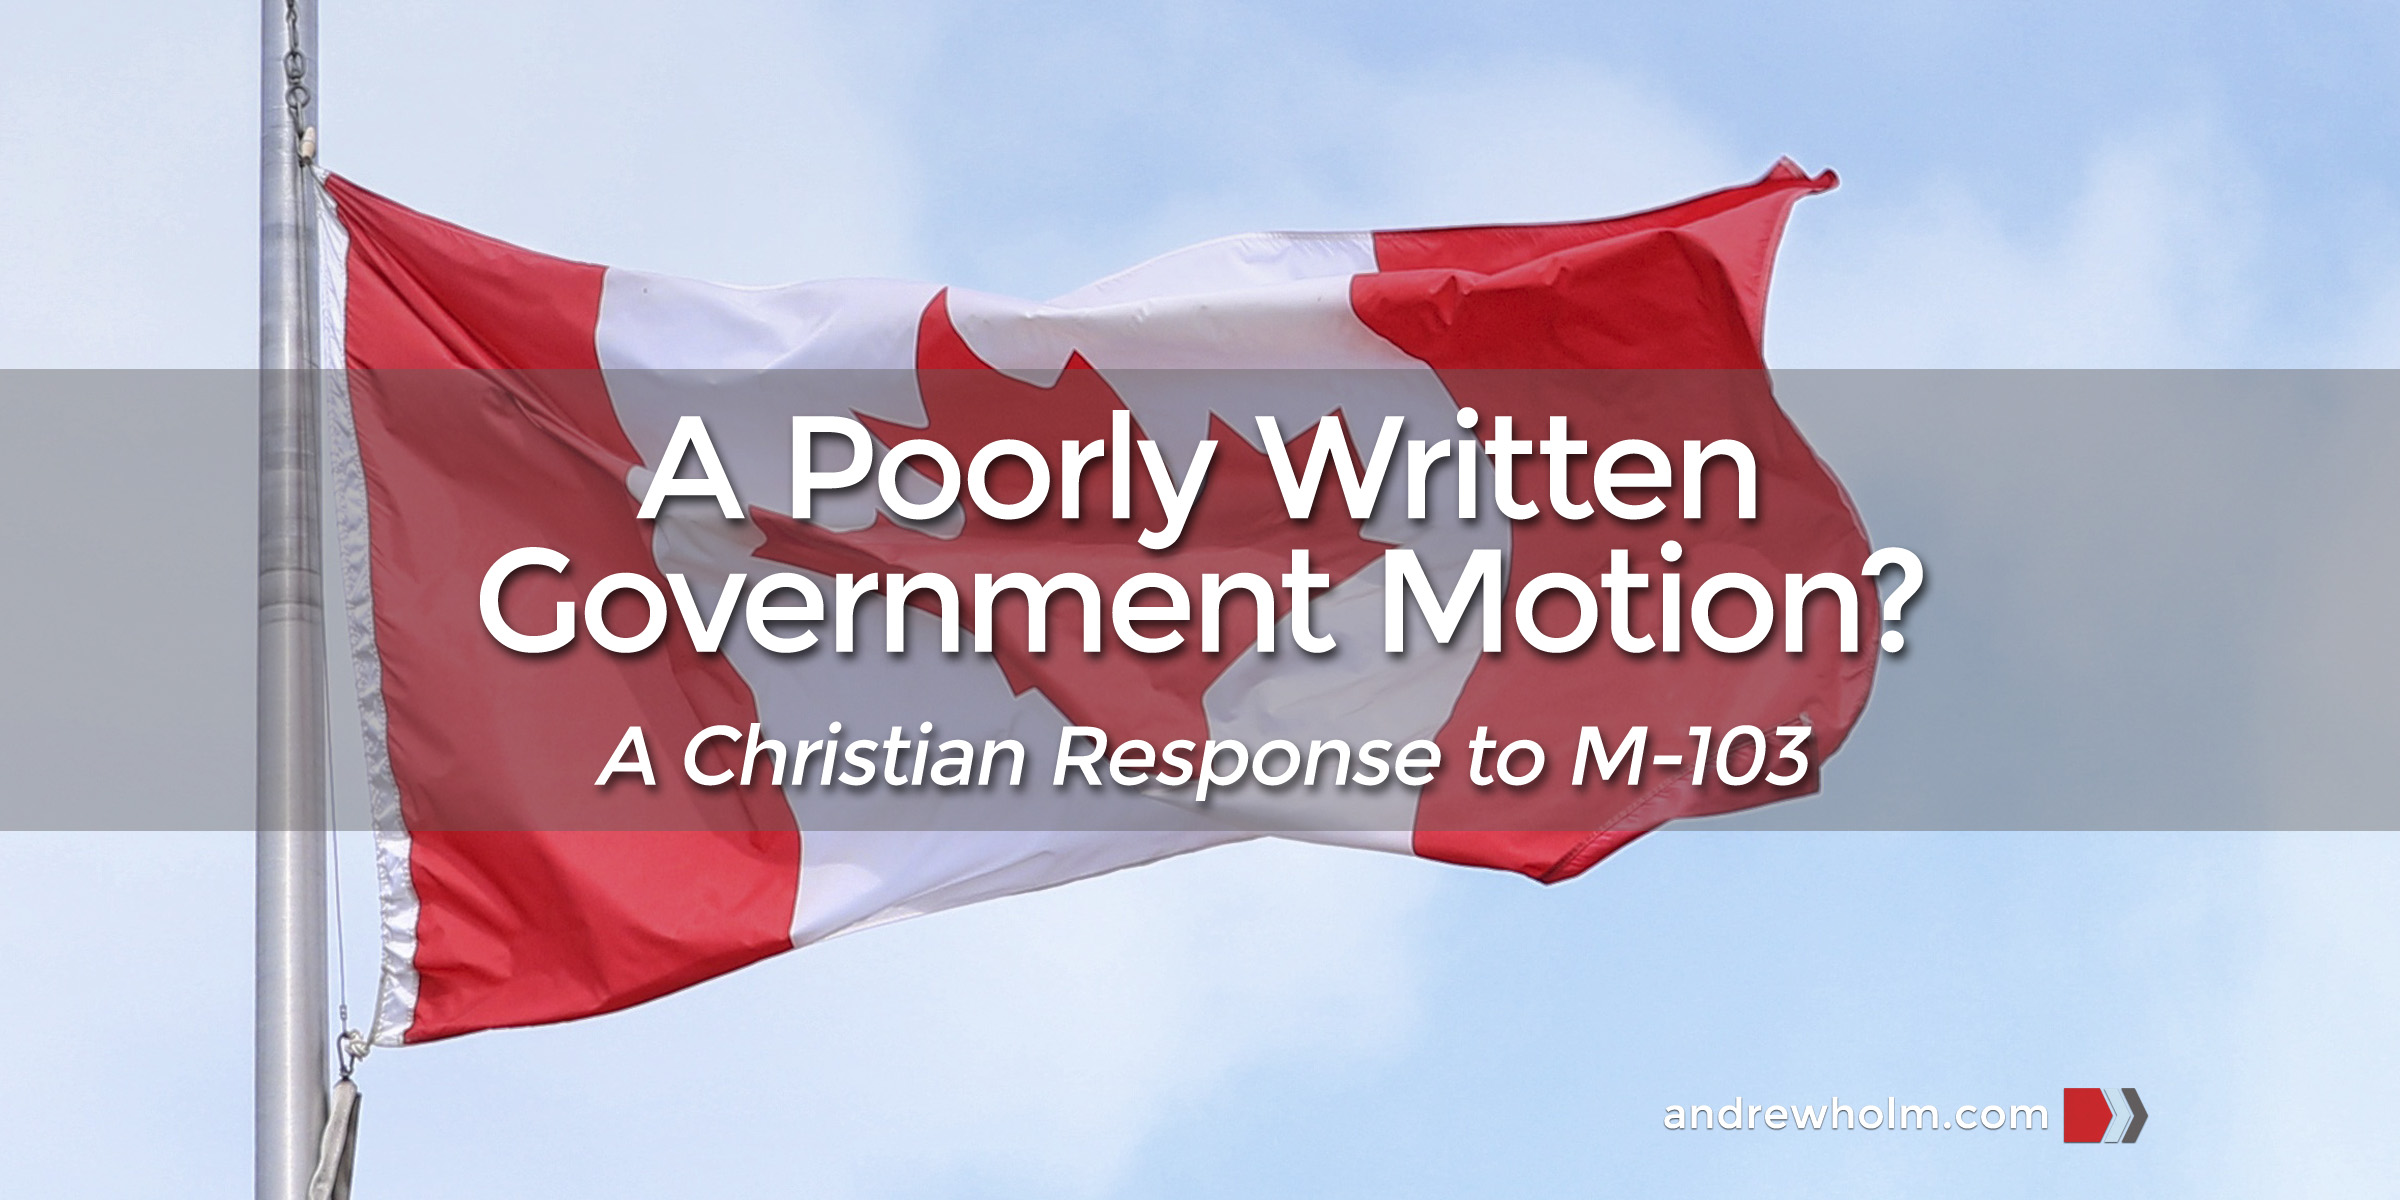 A Poorly Written Government Motion?